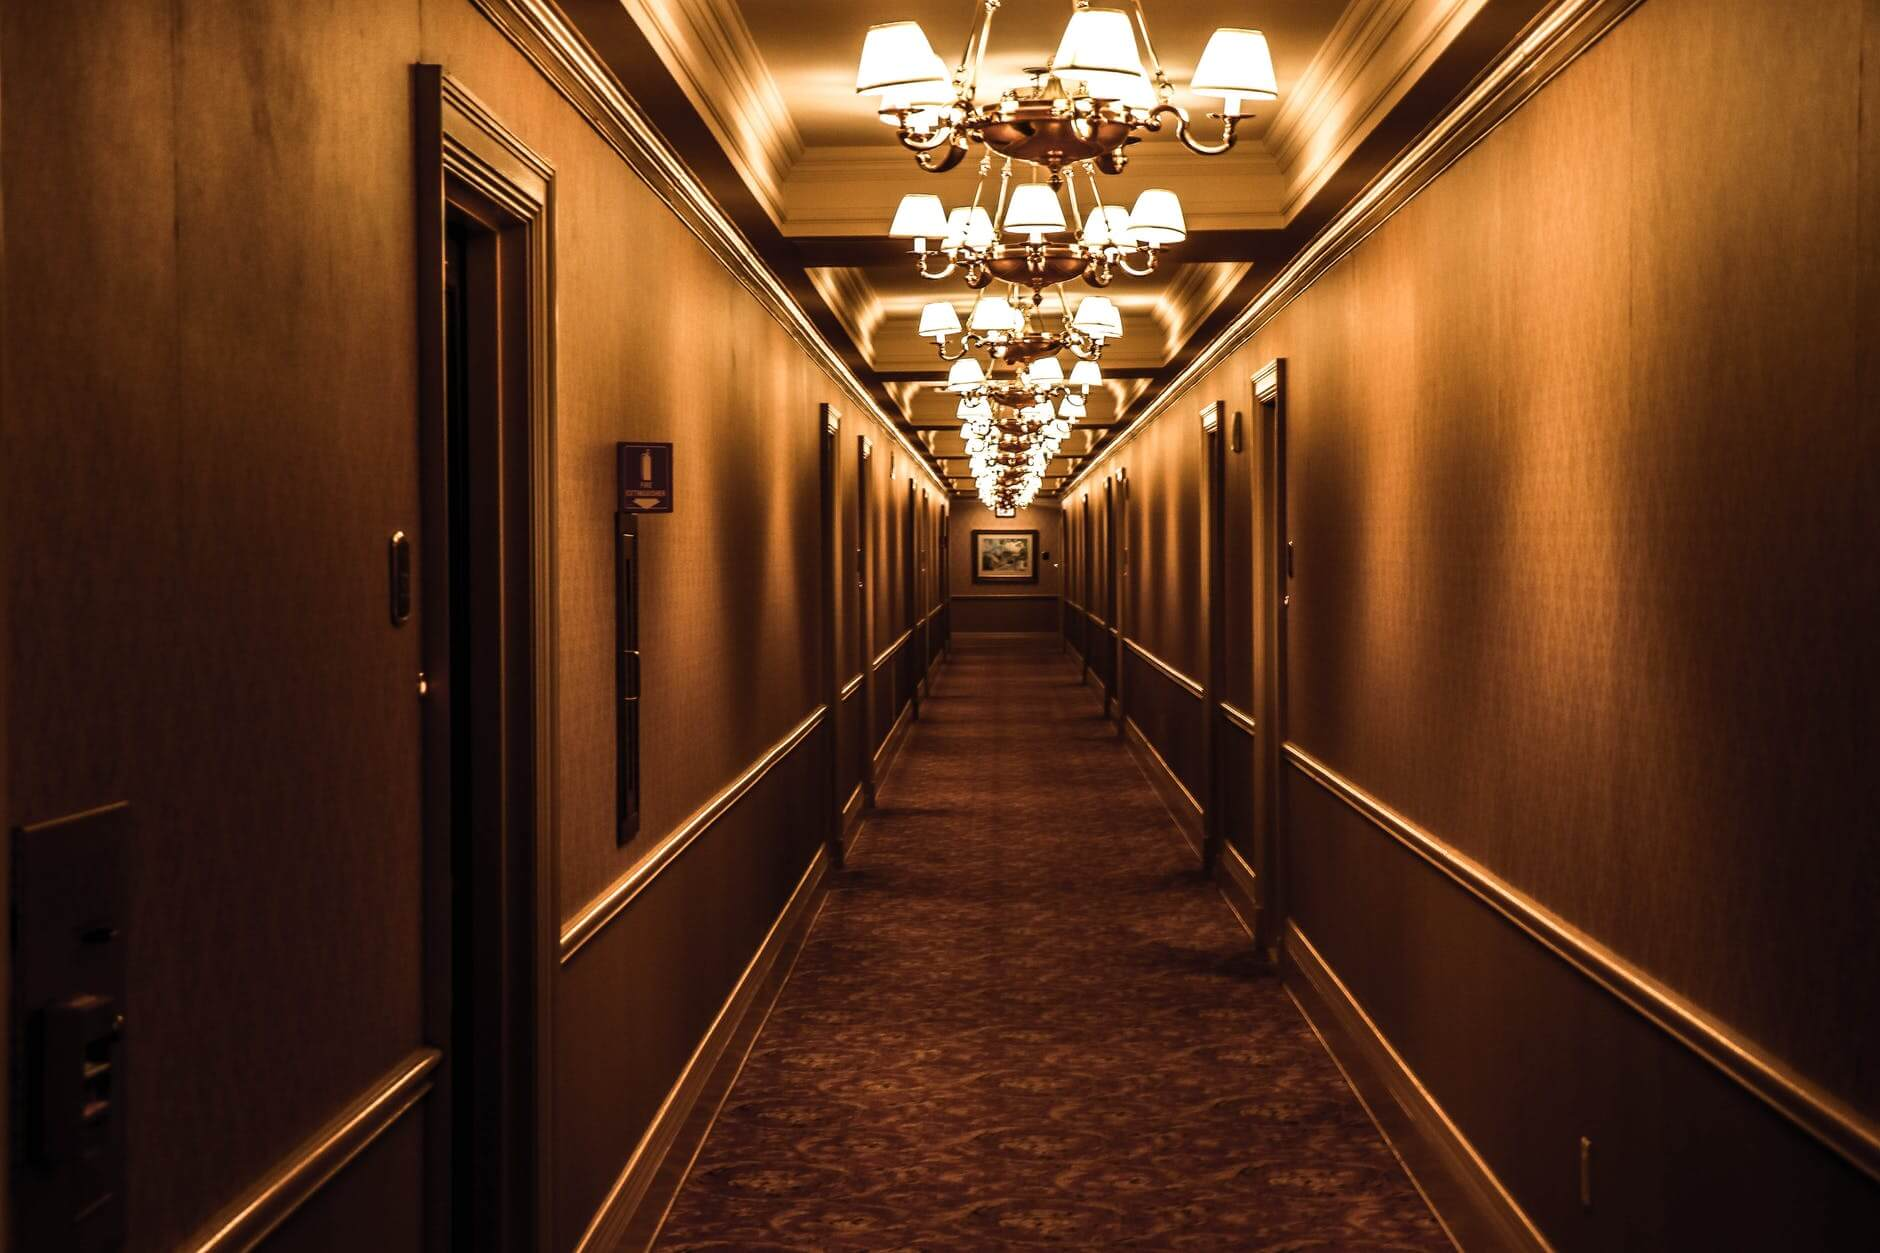 411: Premises Liability and Hotel Responsibility